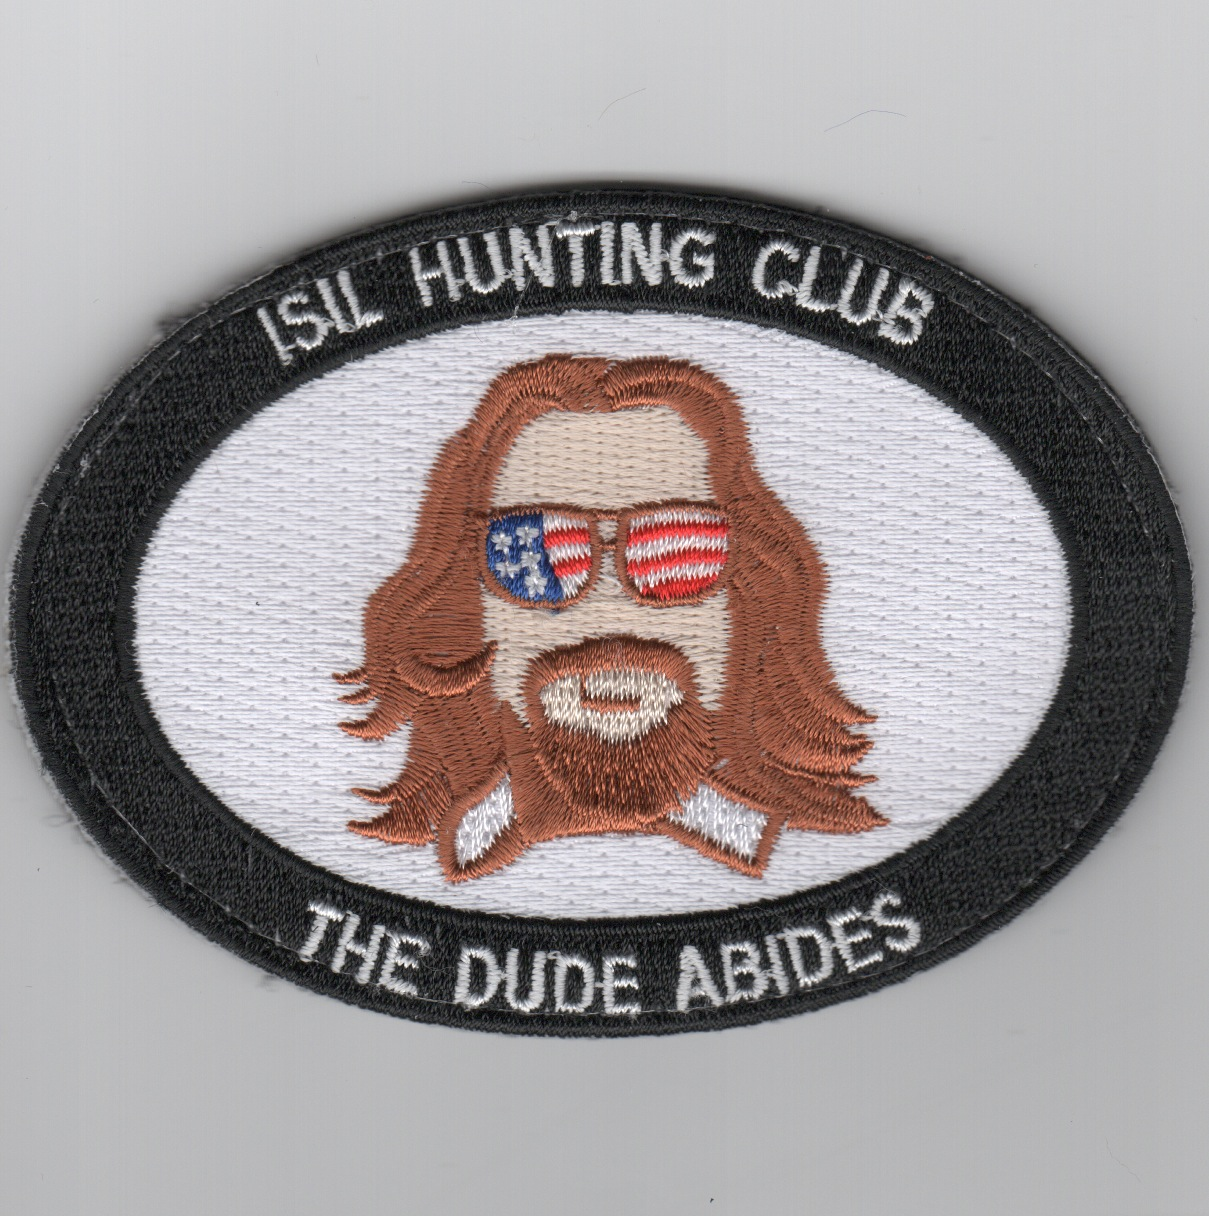 ISIL Hunting Club (Dude Abides)